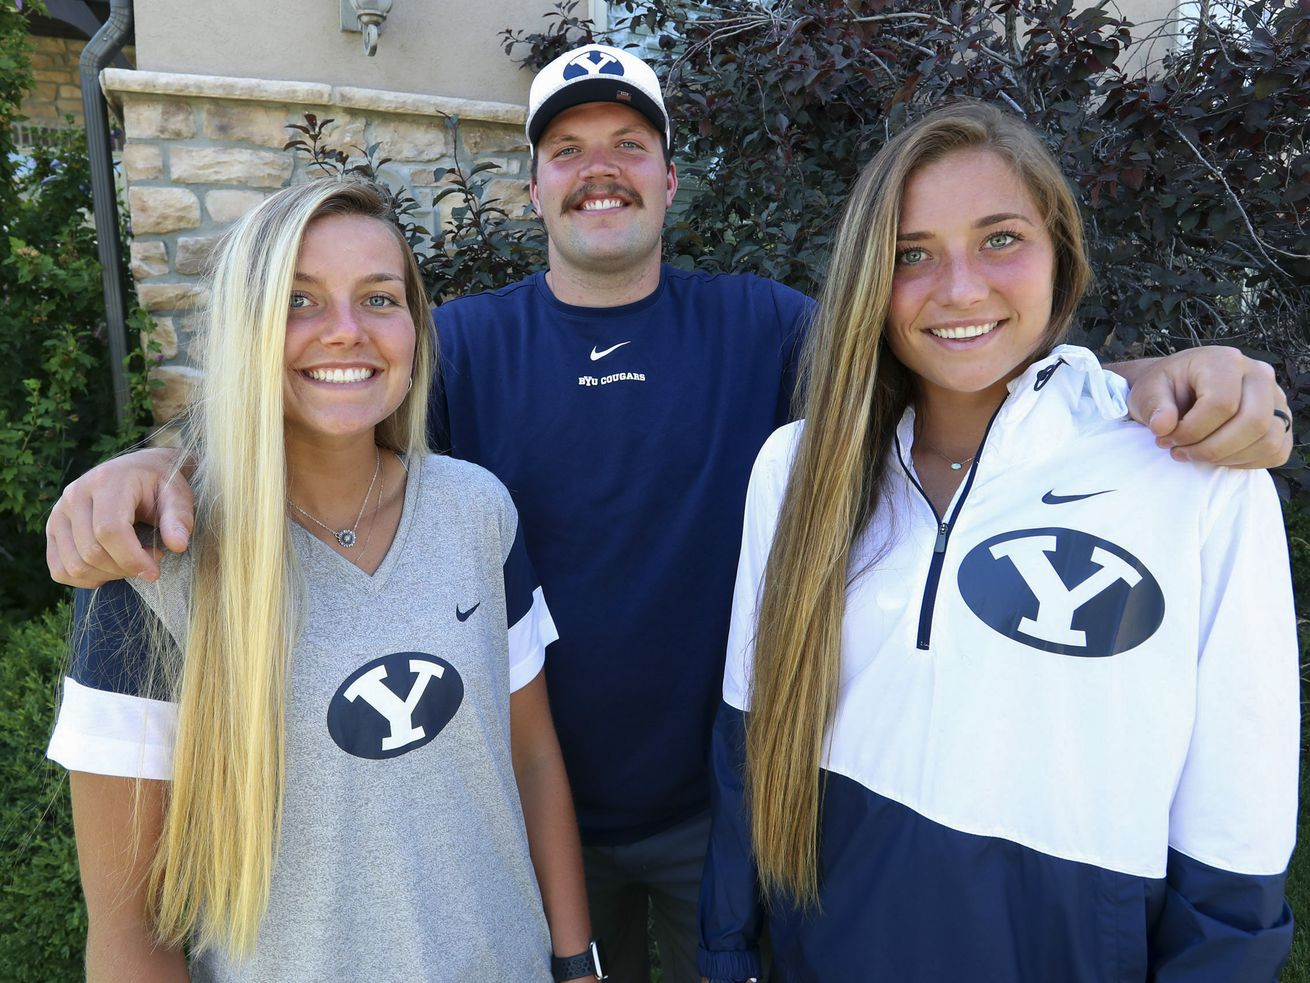 Siblings Savanna, James and Haven Empey pose for a photo outside their home in Lehi on Tuesday, July 7, 2020. All three are BYU athletes. James plays football and Savannah and Haven play soccer.